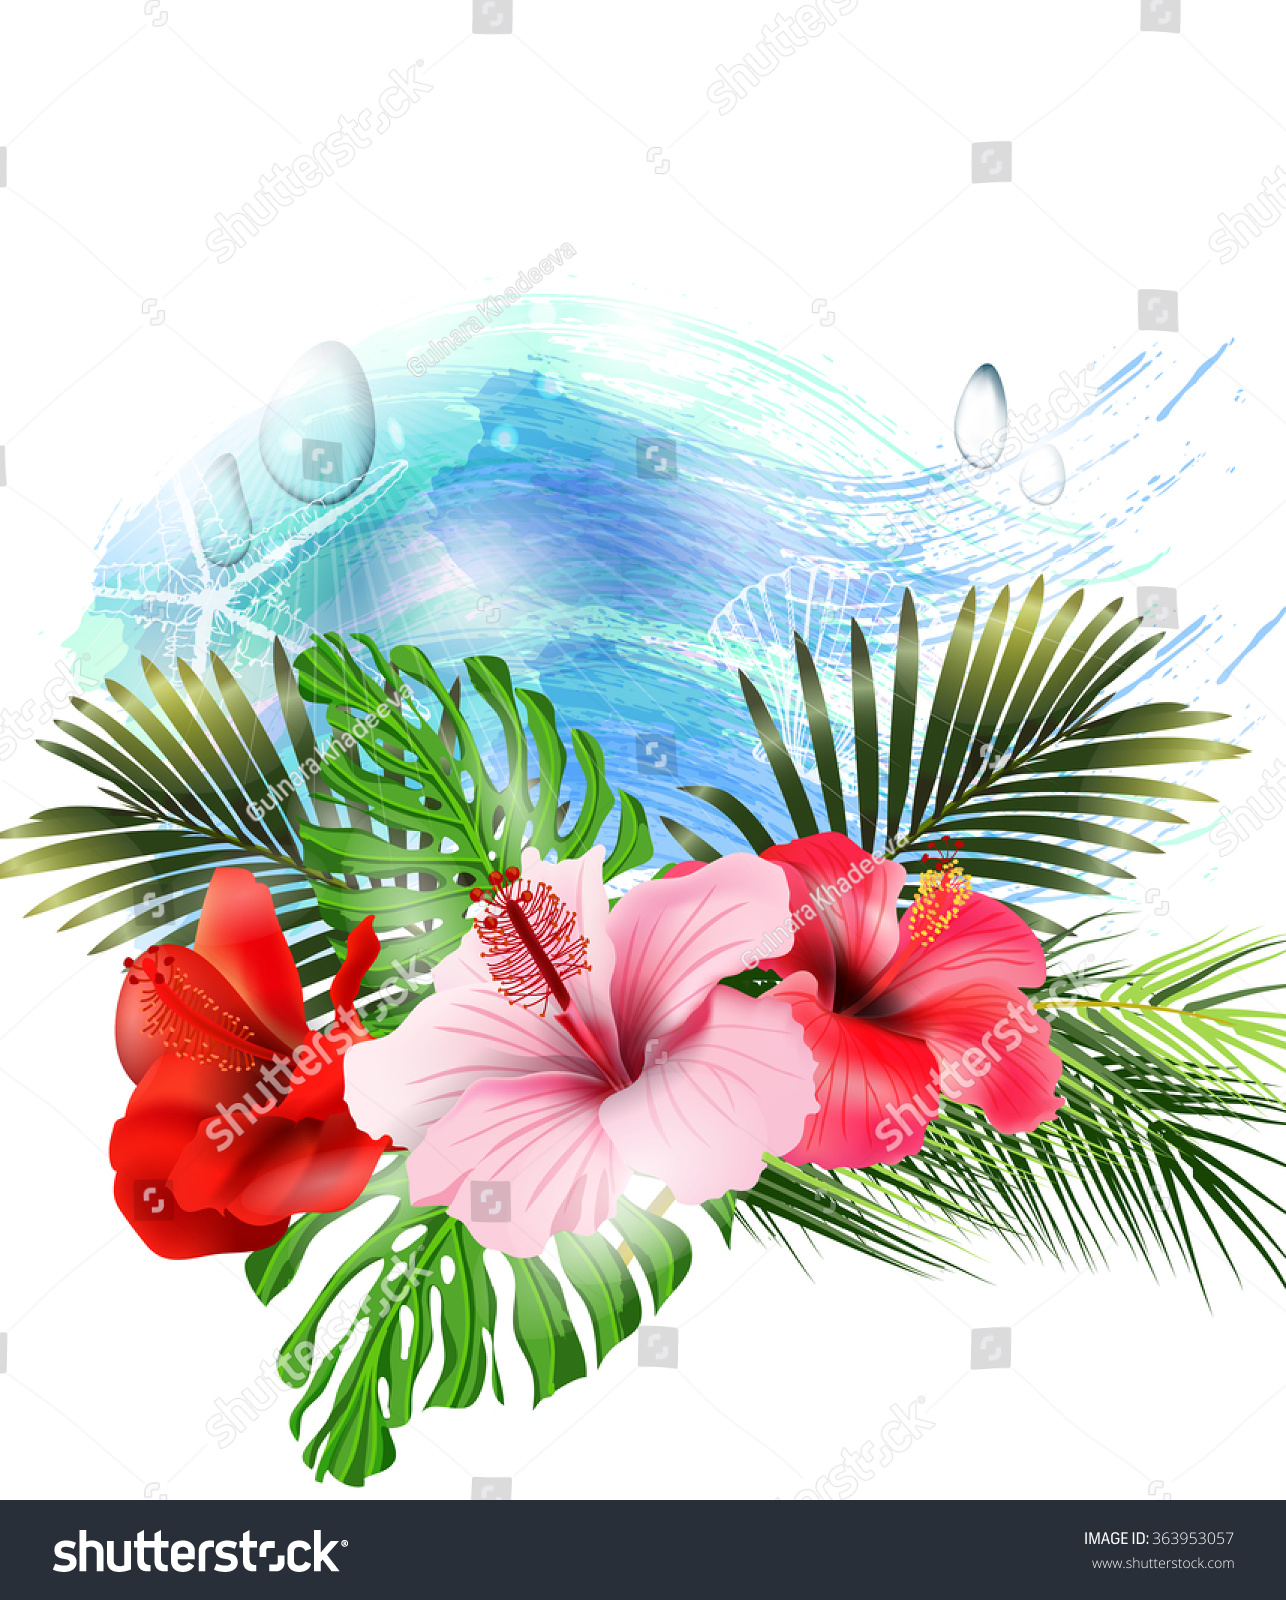 Summer holidays background tropical flowers template stock vector summer holidays background with tropical flowers template vector izmirmasajfo